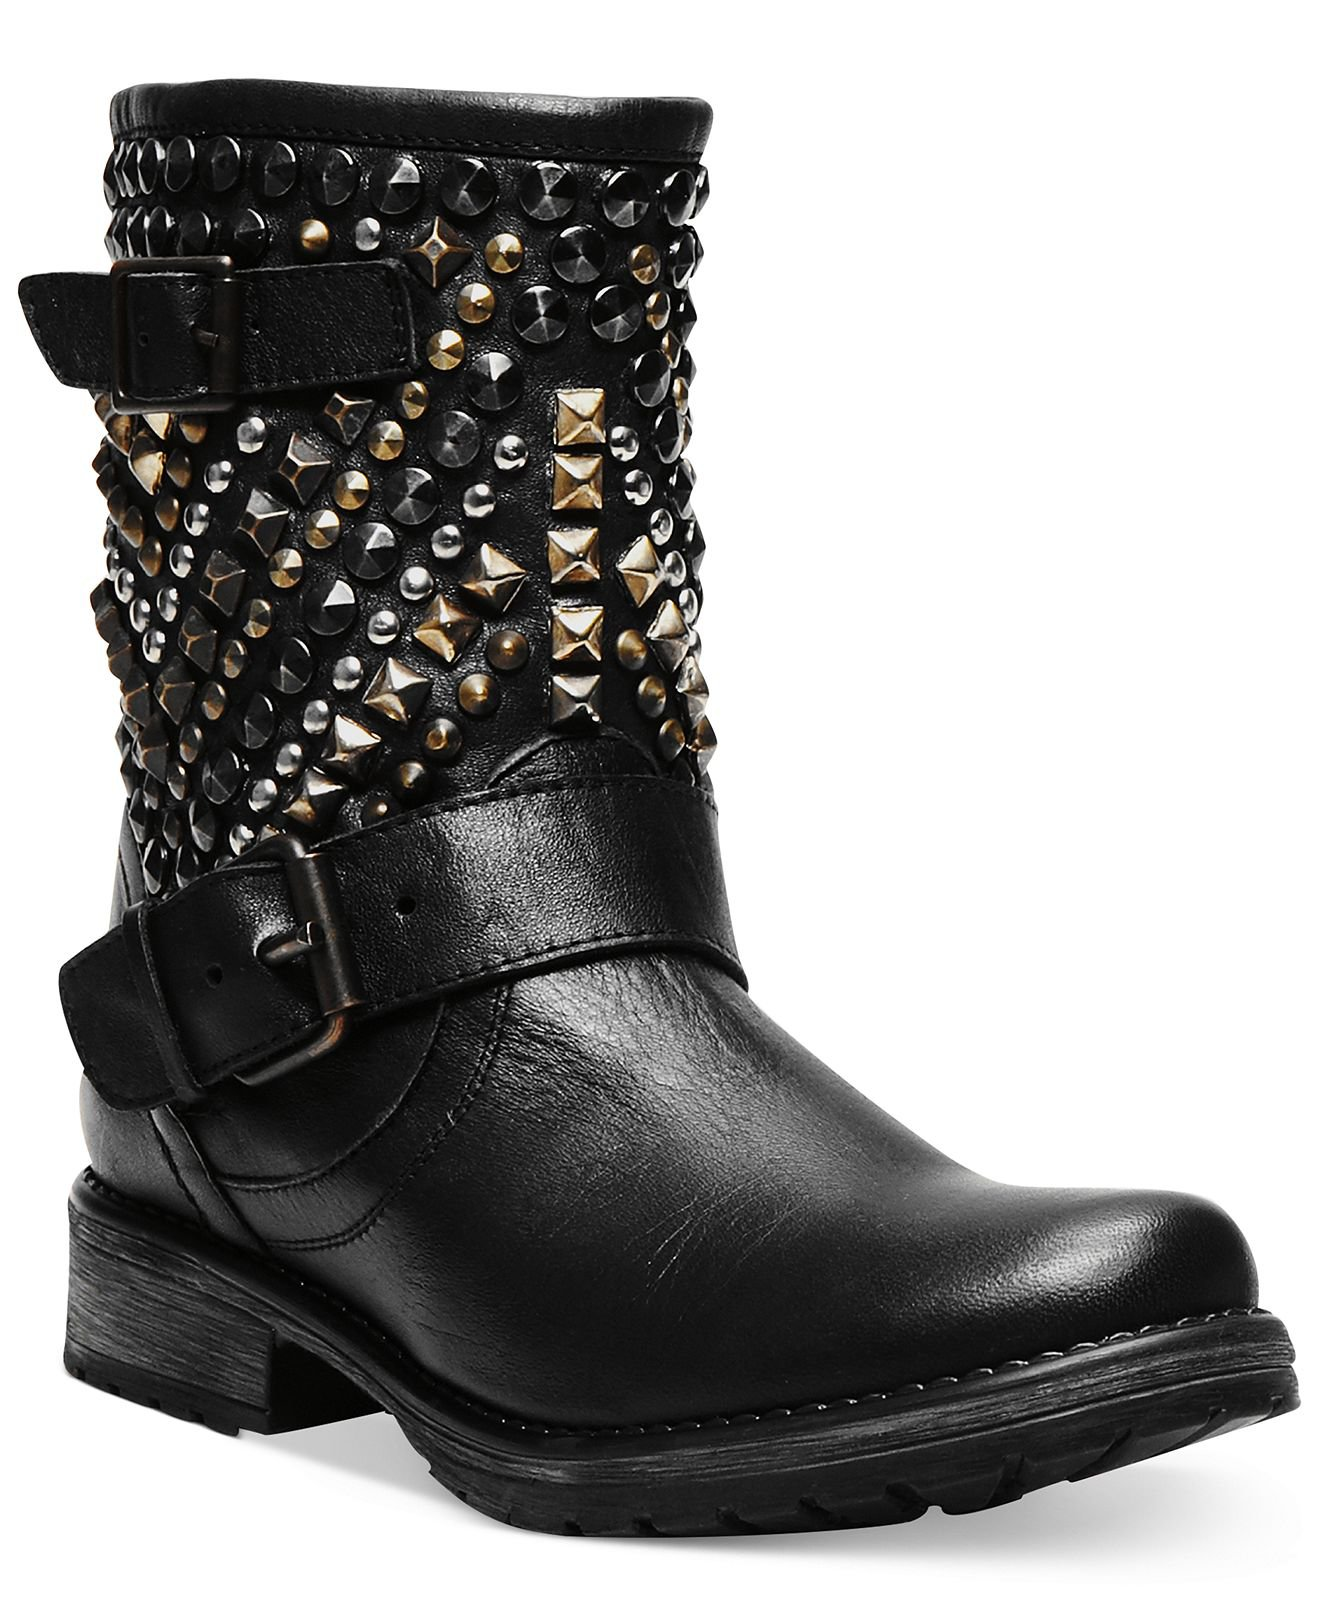 Steve Madden Boots Sale: starting at UNDER $50 with FREE Shipping! Save Up to 50% Off Steve Madden boots, ankle boots, booties chukka boots, over the knee & more - Over 50 styles available.